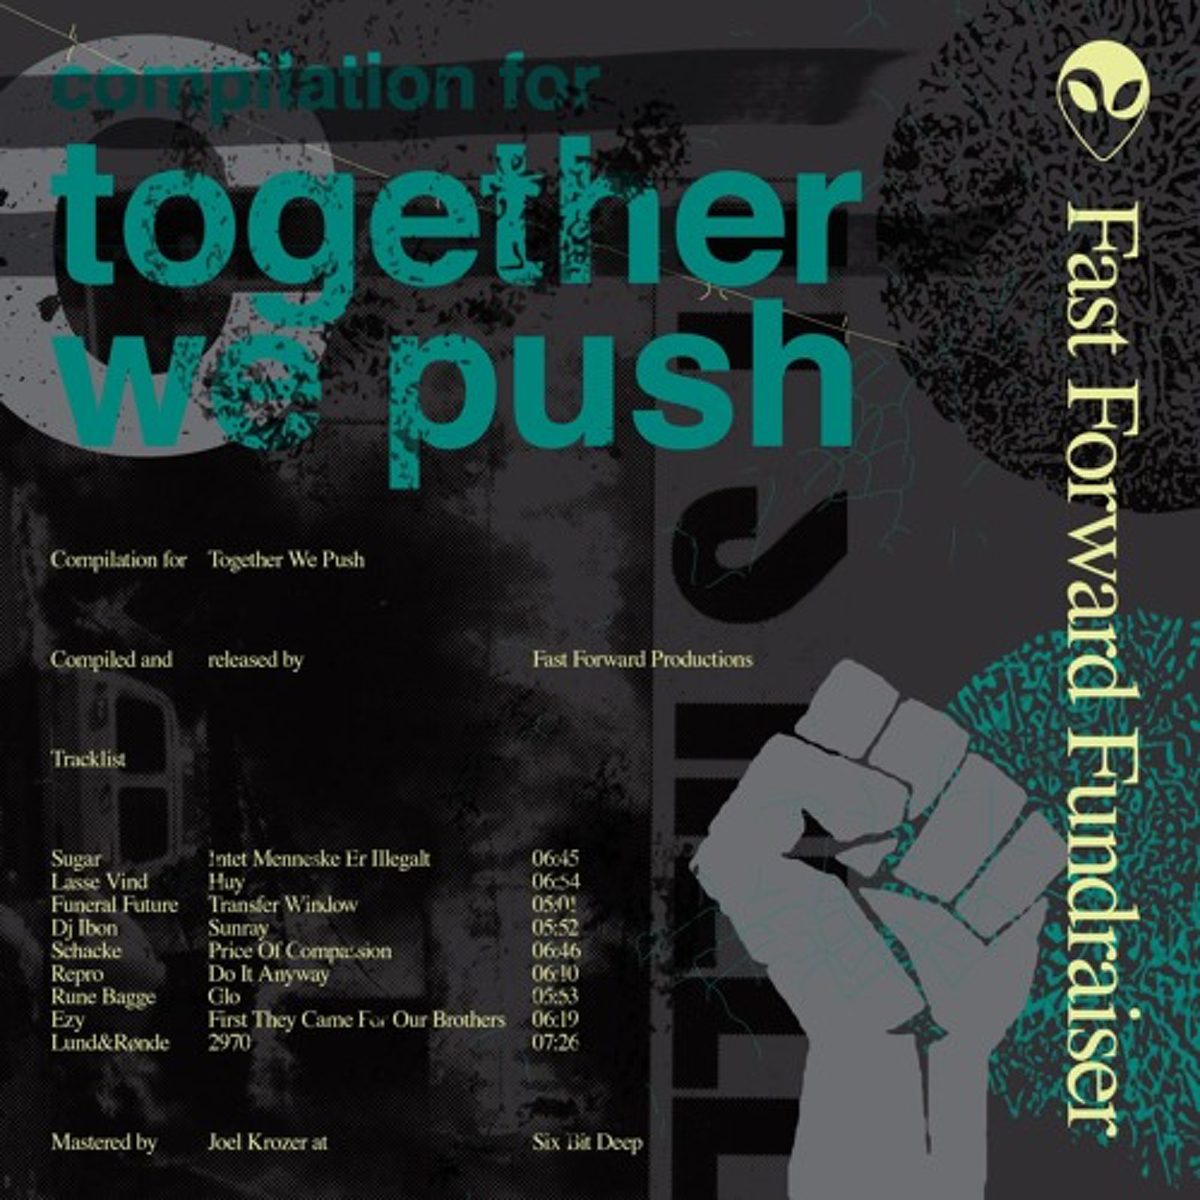 Funeral Future, Schacke, Ibon contribute to Together We Push compilation